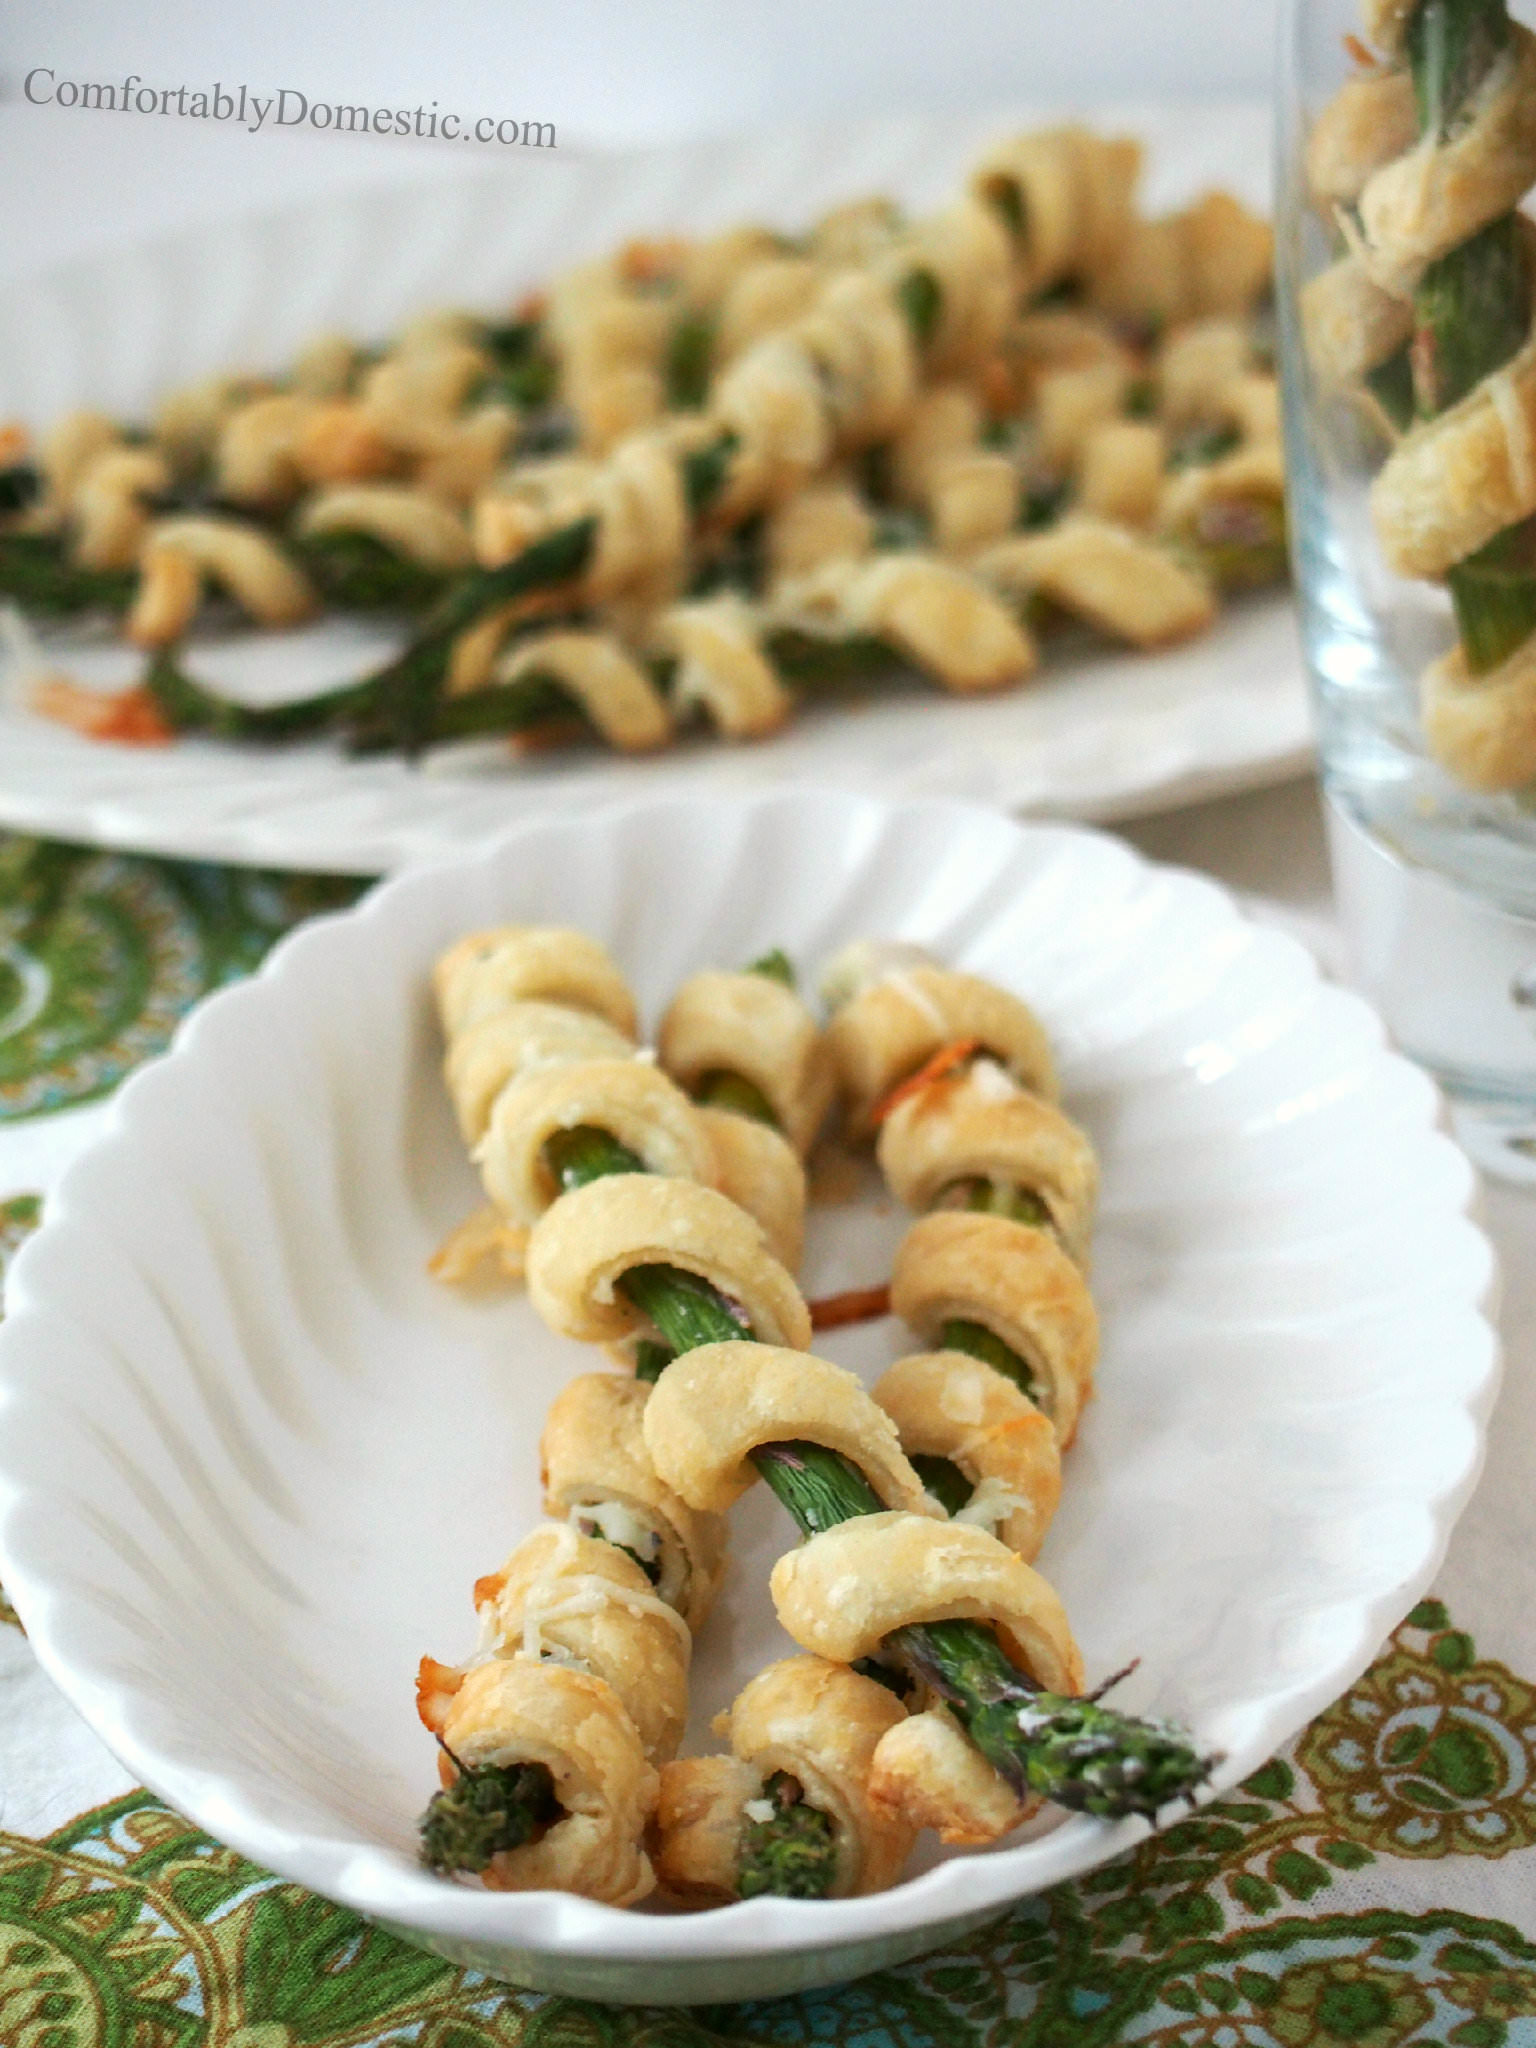 A great use for fresh asparagus is to make cheesy asparagus pastry spirals! Tangy Asiago cheese and buttery pastry entwine fresh asparagus in this simple appetizer recipe. | ComfortablyDomestic.com